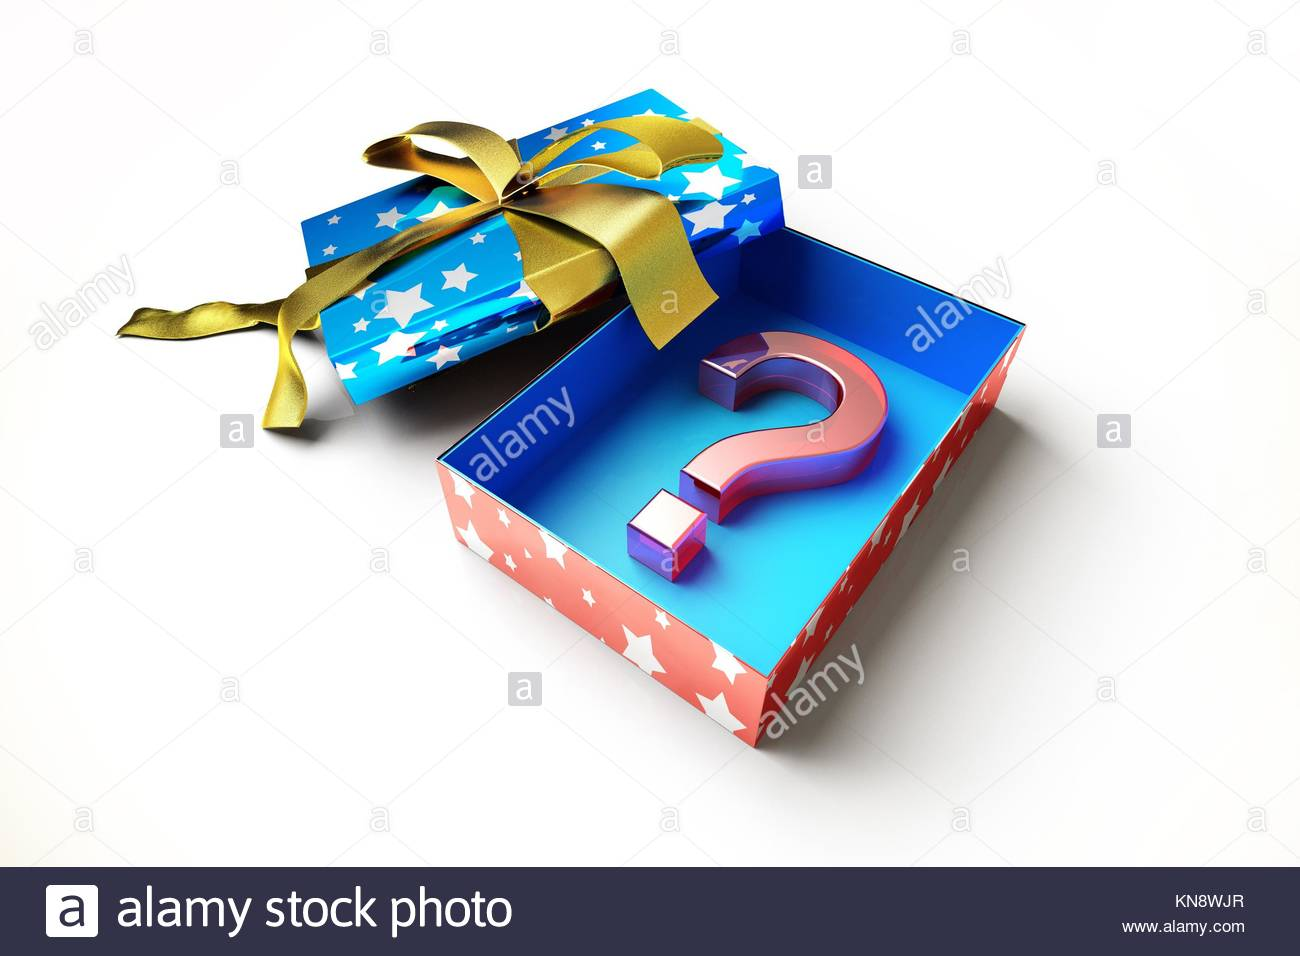 Opened gift box with golden ribbon, with a question mark symbol inside, made of red plastic. On white surface. - Stock Image